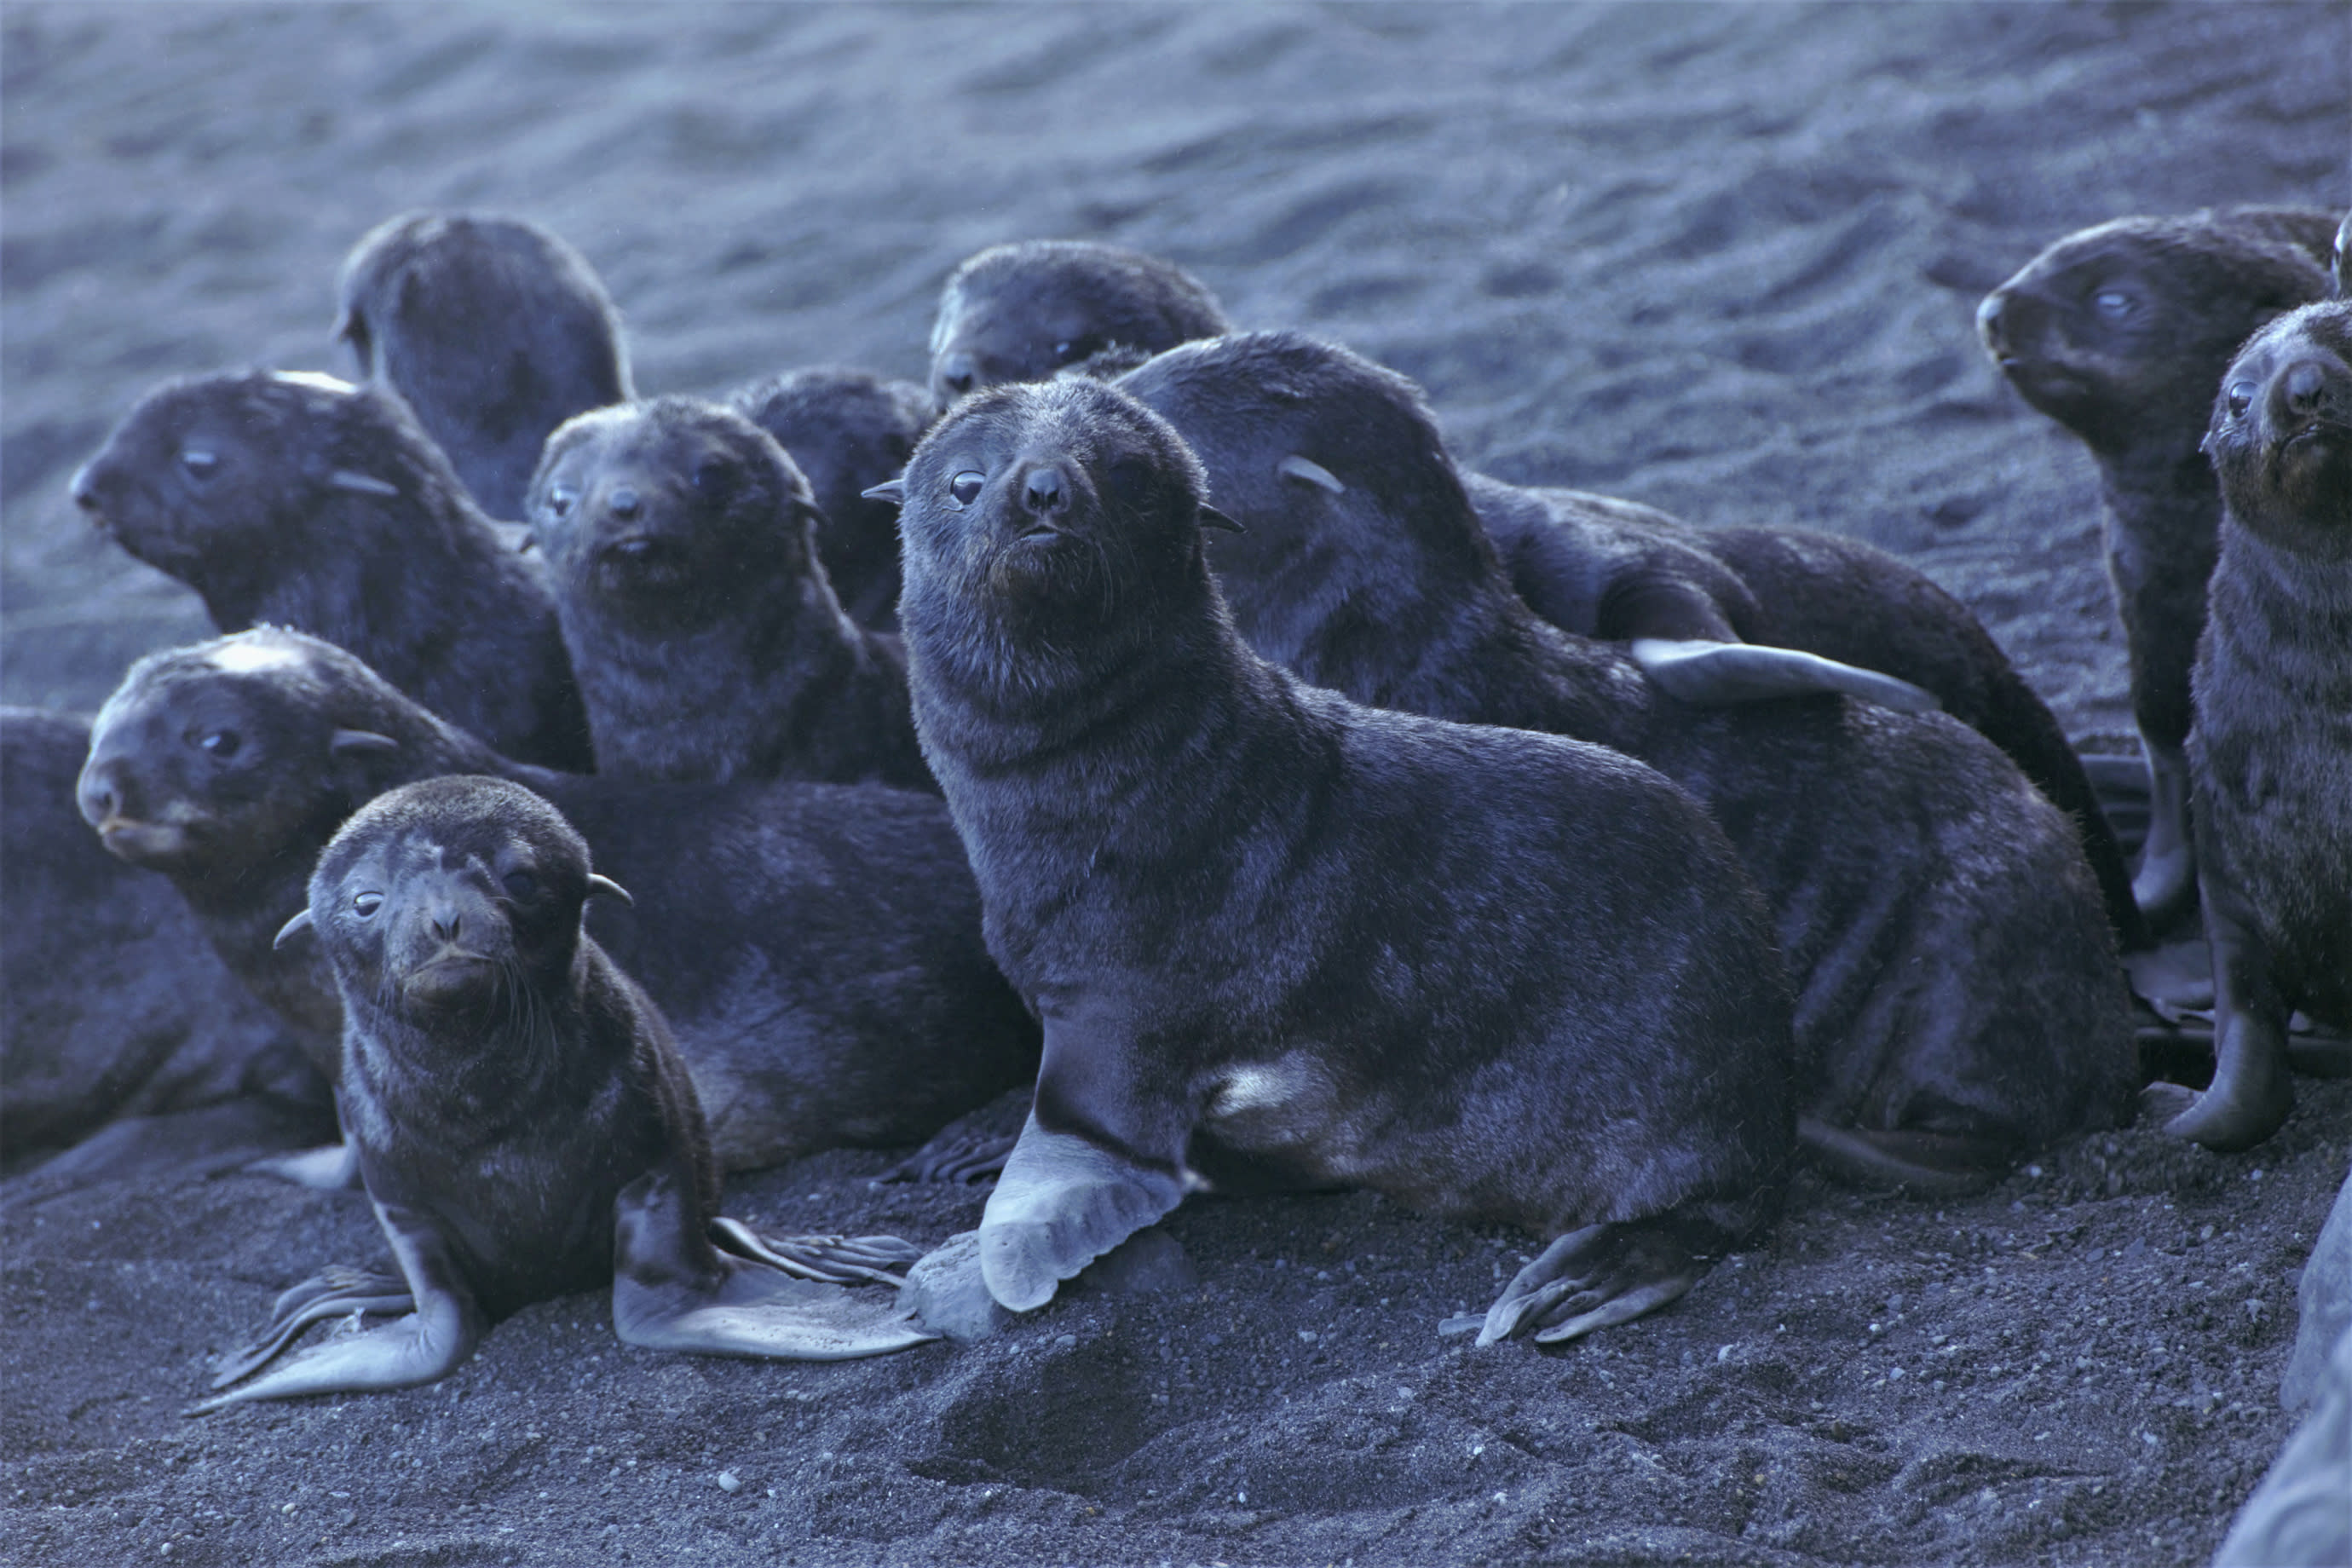 This August 2019 photo released by the National Oceanic and Atmospheric Administration Fisheries (NOAA) shows northern fur seal pups standing on a beach on Bogoslof Island, Alaska. Alaska's northern fur seals are thriving on an island that's the tip of an active undersea volcano. Numbers of fur seals continue to grow on tiny Bogoslof Island despite hot mud, steam and sulfurous gases spitting from vents on the volcano. (Maggie Mooney-Seus/NOAA Fisheries via AP)